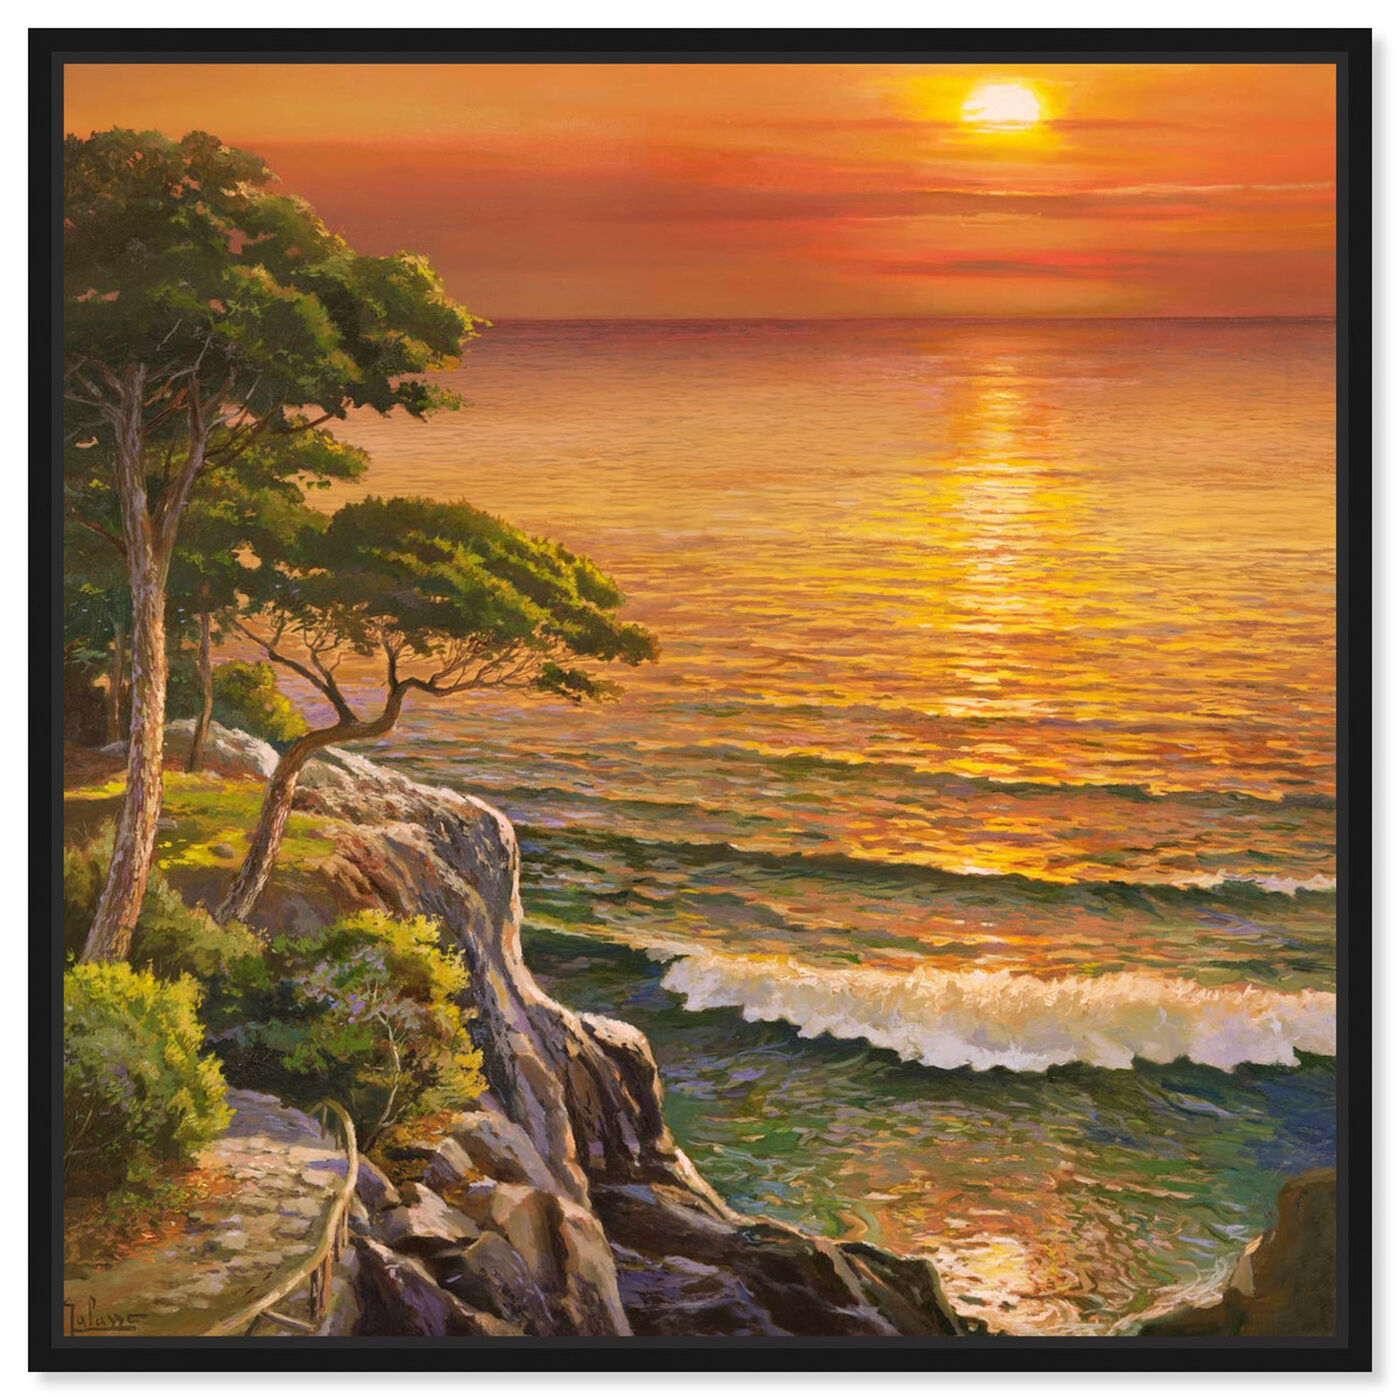 Front view of Sai - Sunset Visage 1AD2552 featuring nature and landscape and sunrise and sunsets art.